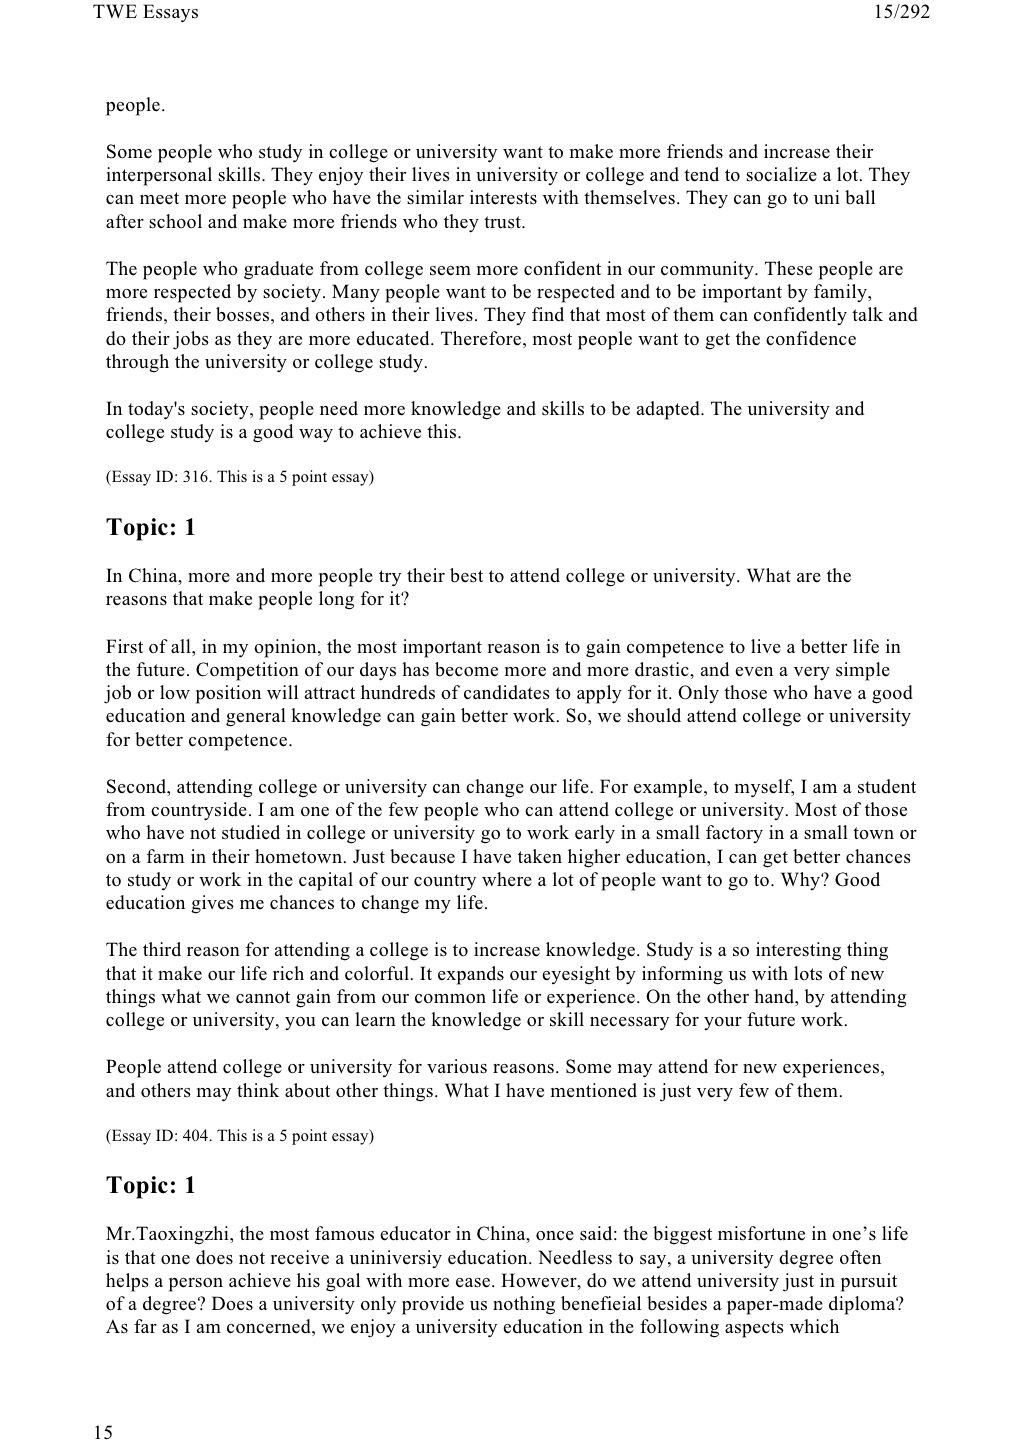 008 Topics In Essay Writing Example Unbelievable Interesting For Competition Hindi Ielts With Answers Pdf Large